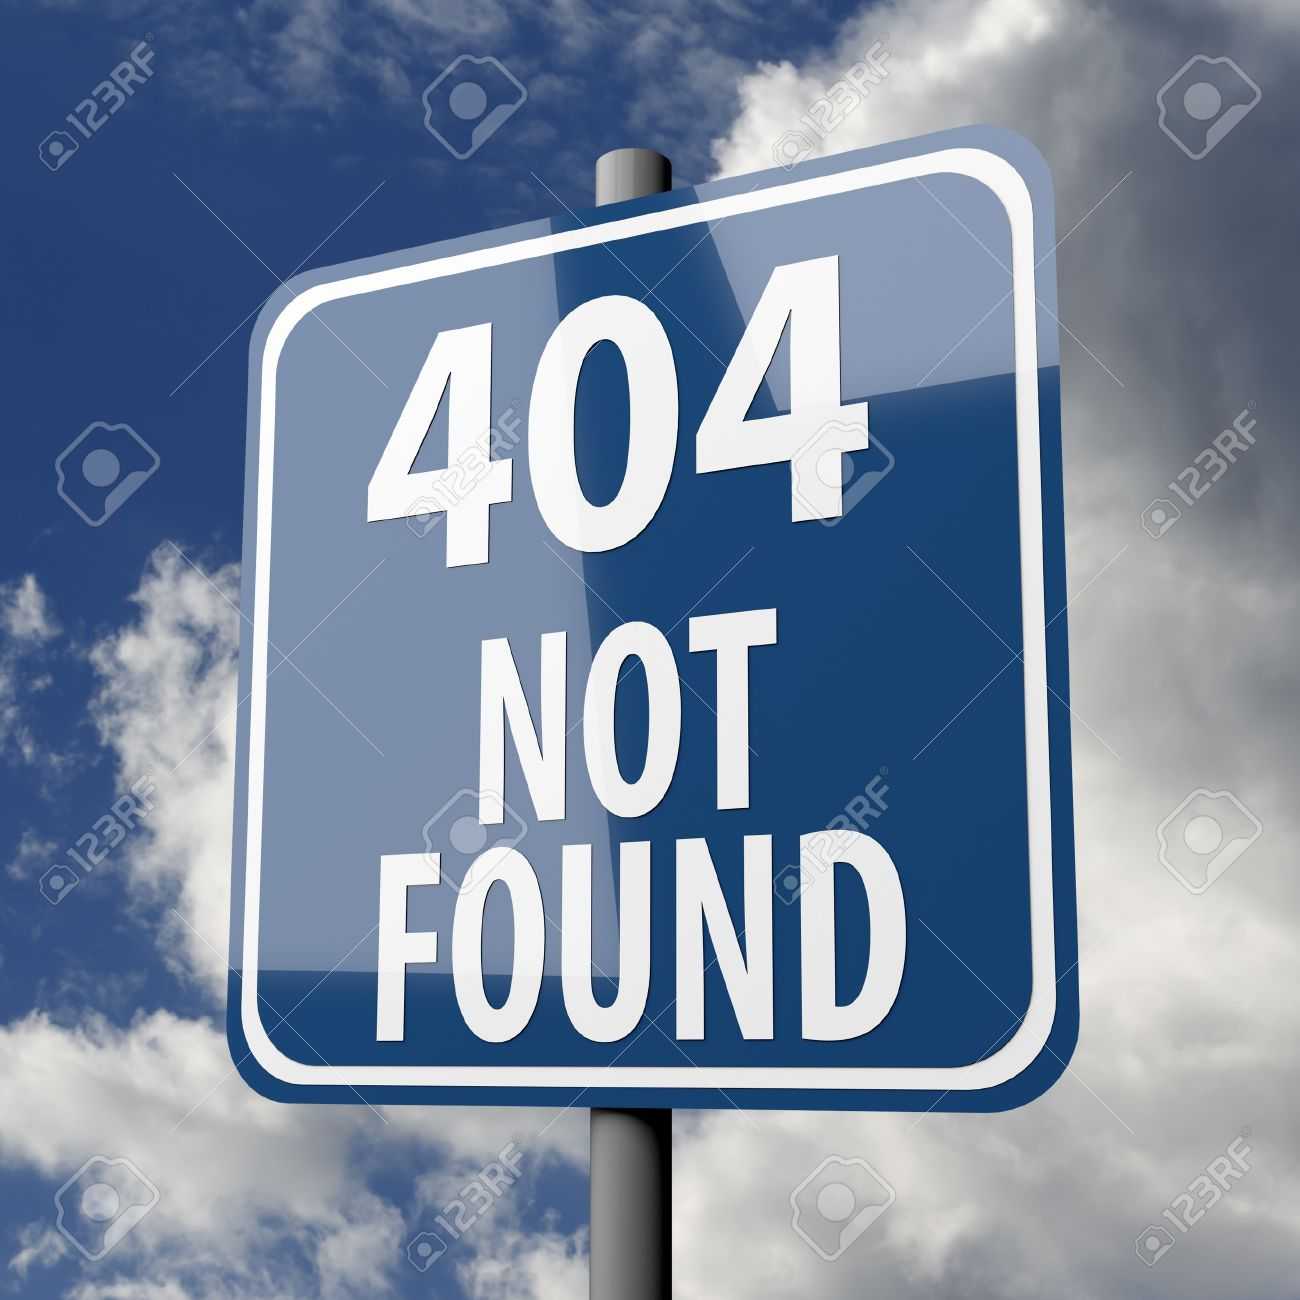 Background image 404 - Road Sign Blue With Words 404 Not Found On Blue Sky Background Stock Photo 20071260